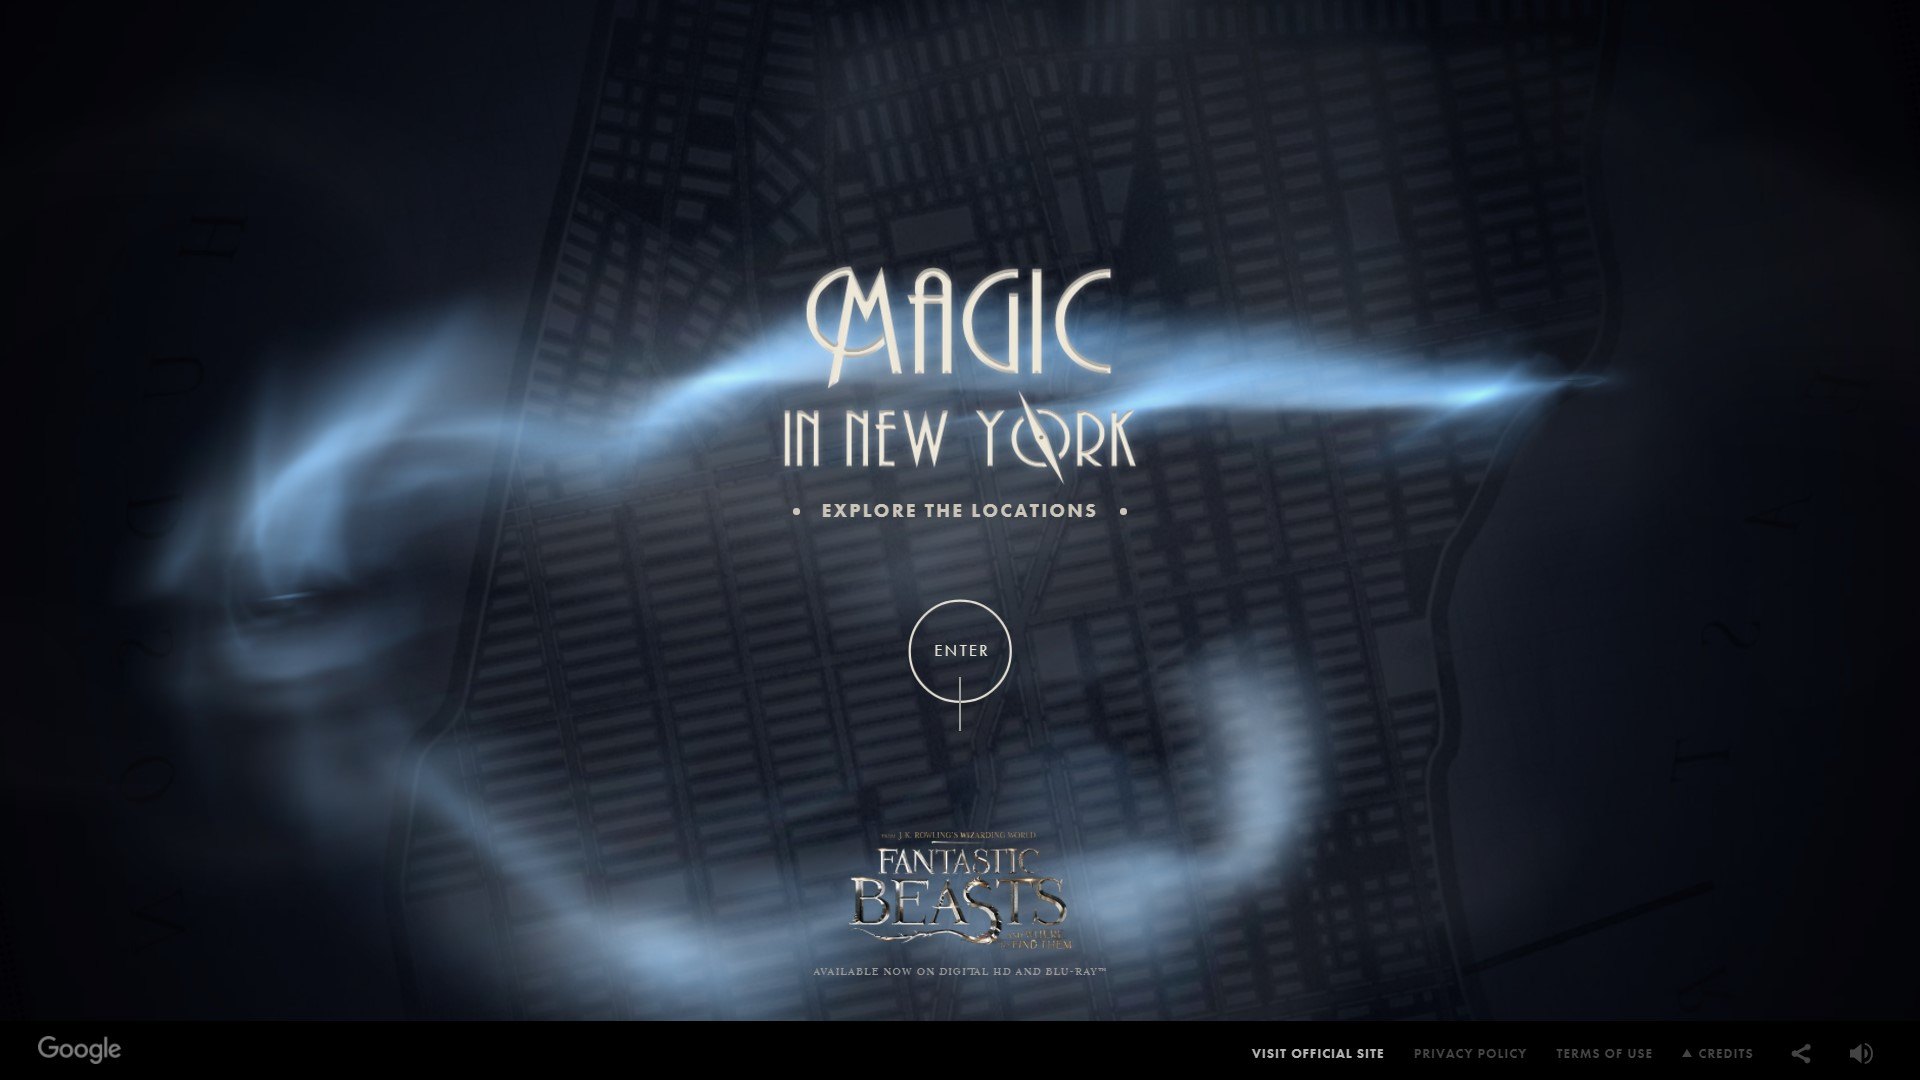 Magical maps fantastic beasts and where to find them harry as for the release of the first of five fantastic beasts movies google in a promotional campaign created a website called magical maps in which you can gumiabroncs Gallery